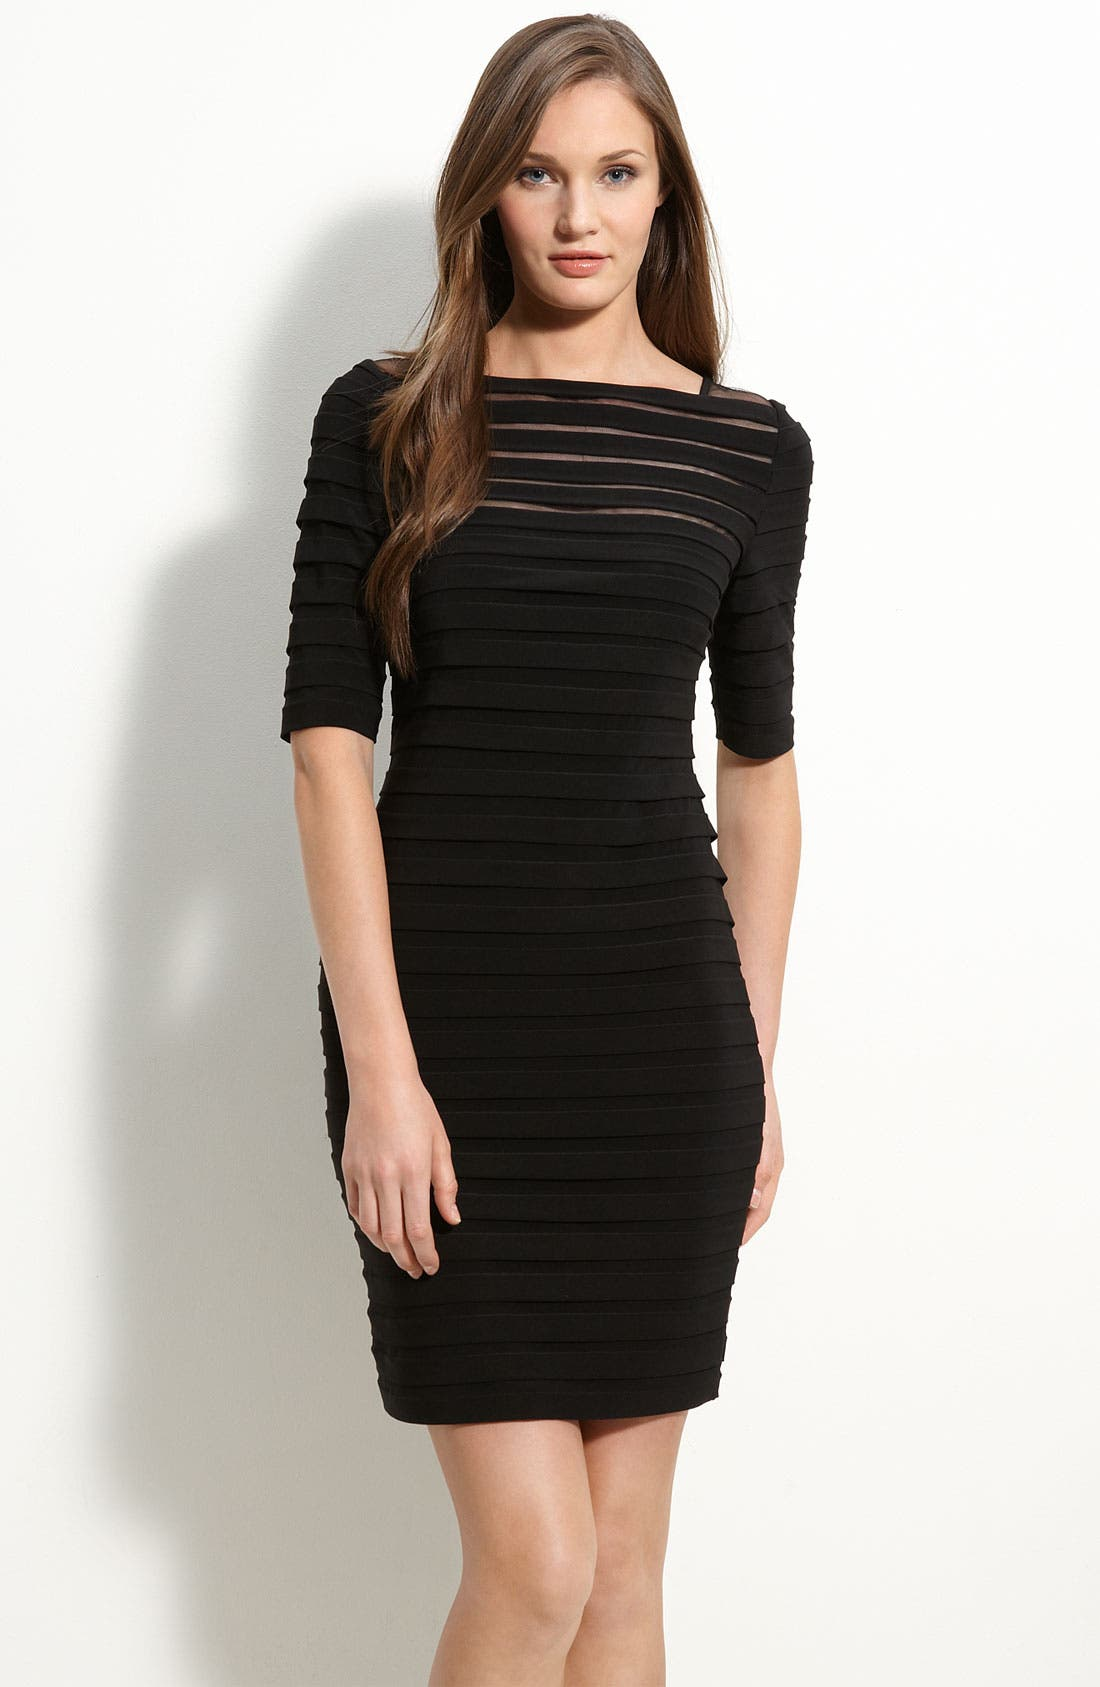 Alternate Image 1 Selected - Adrianna Papell Pleated Illusion Sheath Dress (Regular & Petite)